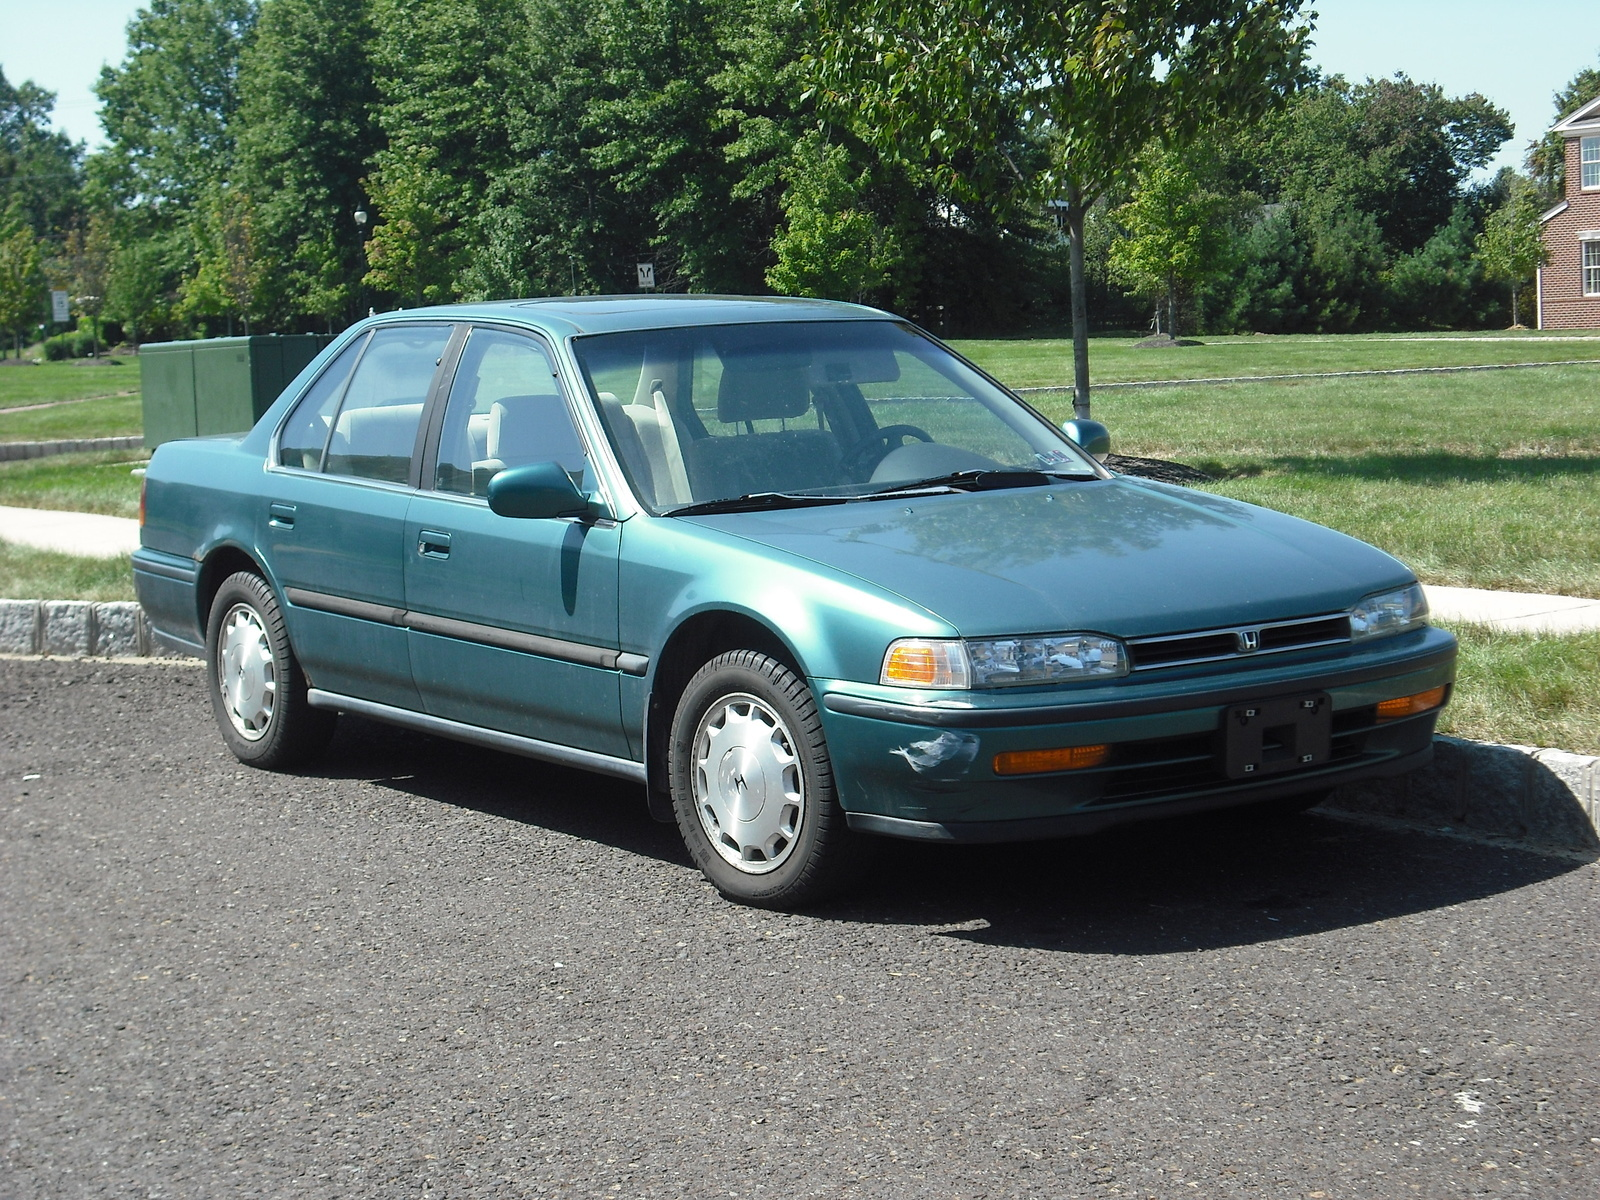 1993 Honda Accord